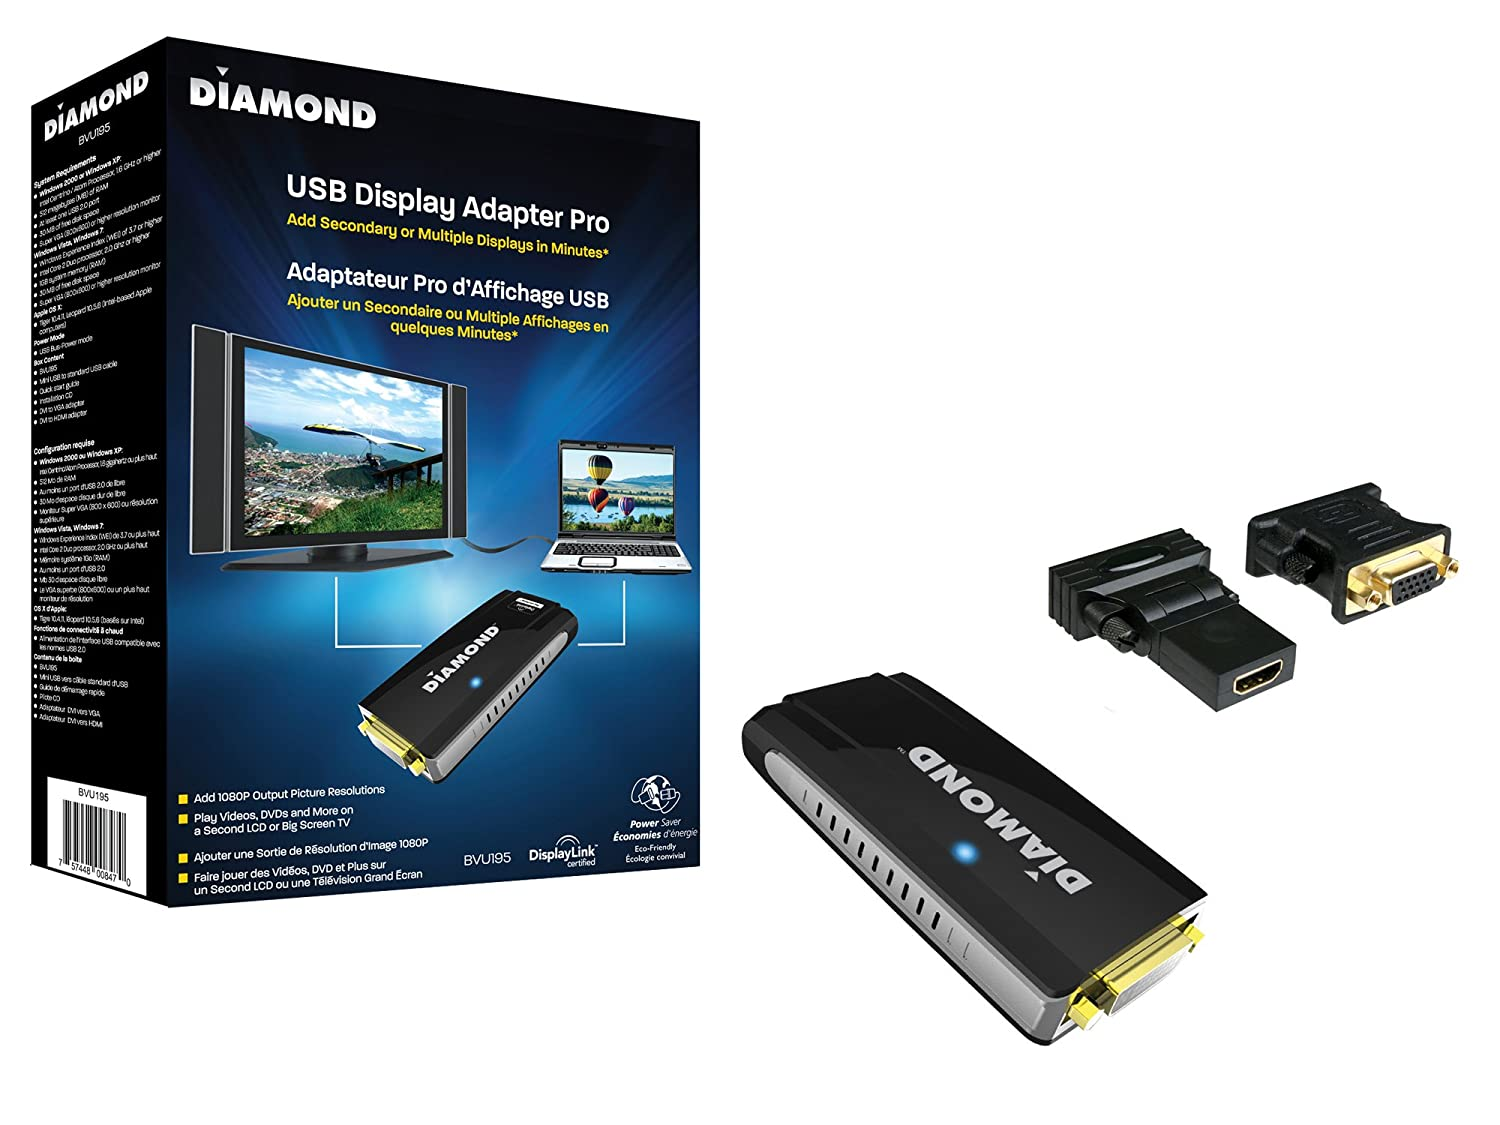 Diamond BVU195 HD USB Display Adapter (DVI and VGA with included DVI to VGA adapter) A/V Device Cables